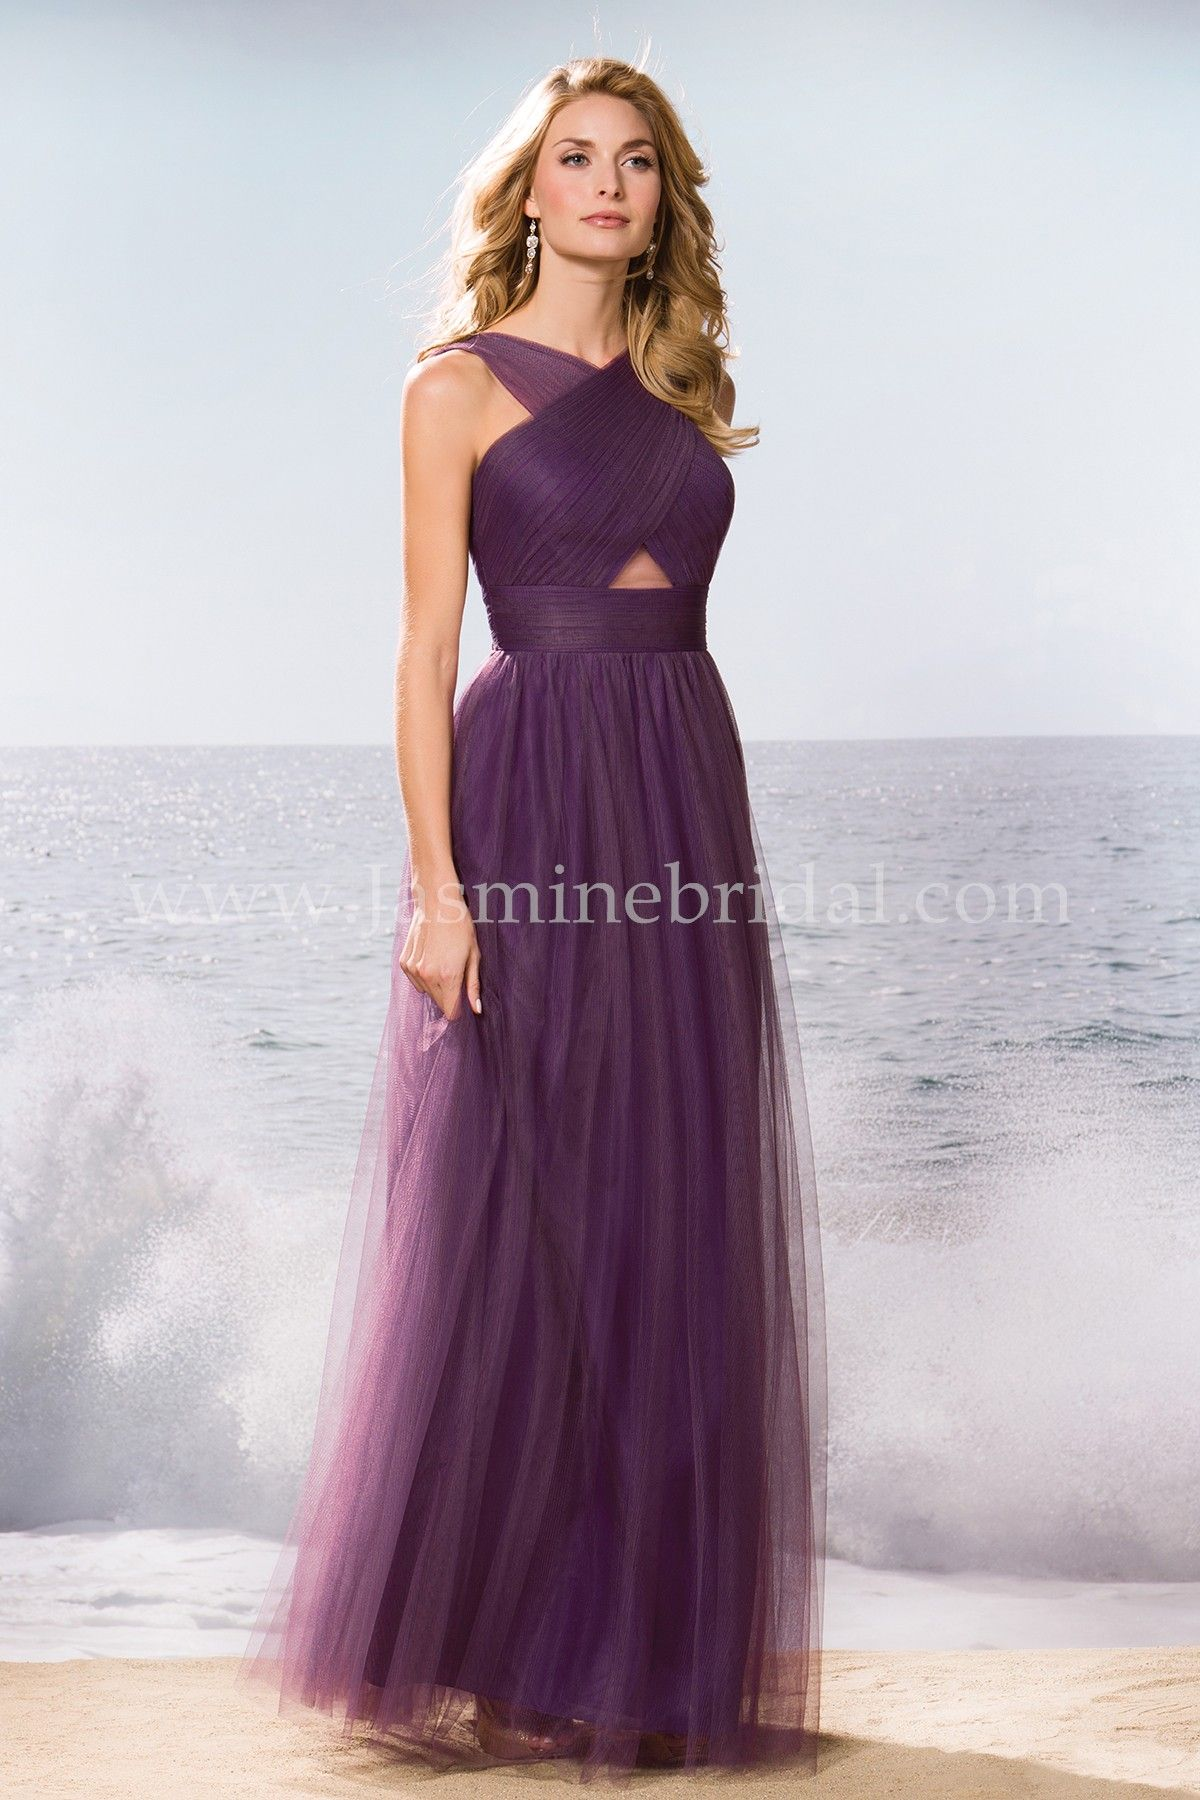 Jasmine bridal bridesmaid dress belsoie style l174061 in orchid jasmine bridal bridesmaid dress belsoie style l174061 in orchid shadow an adaptable bridesmaid dress ombrellifo Choice Image